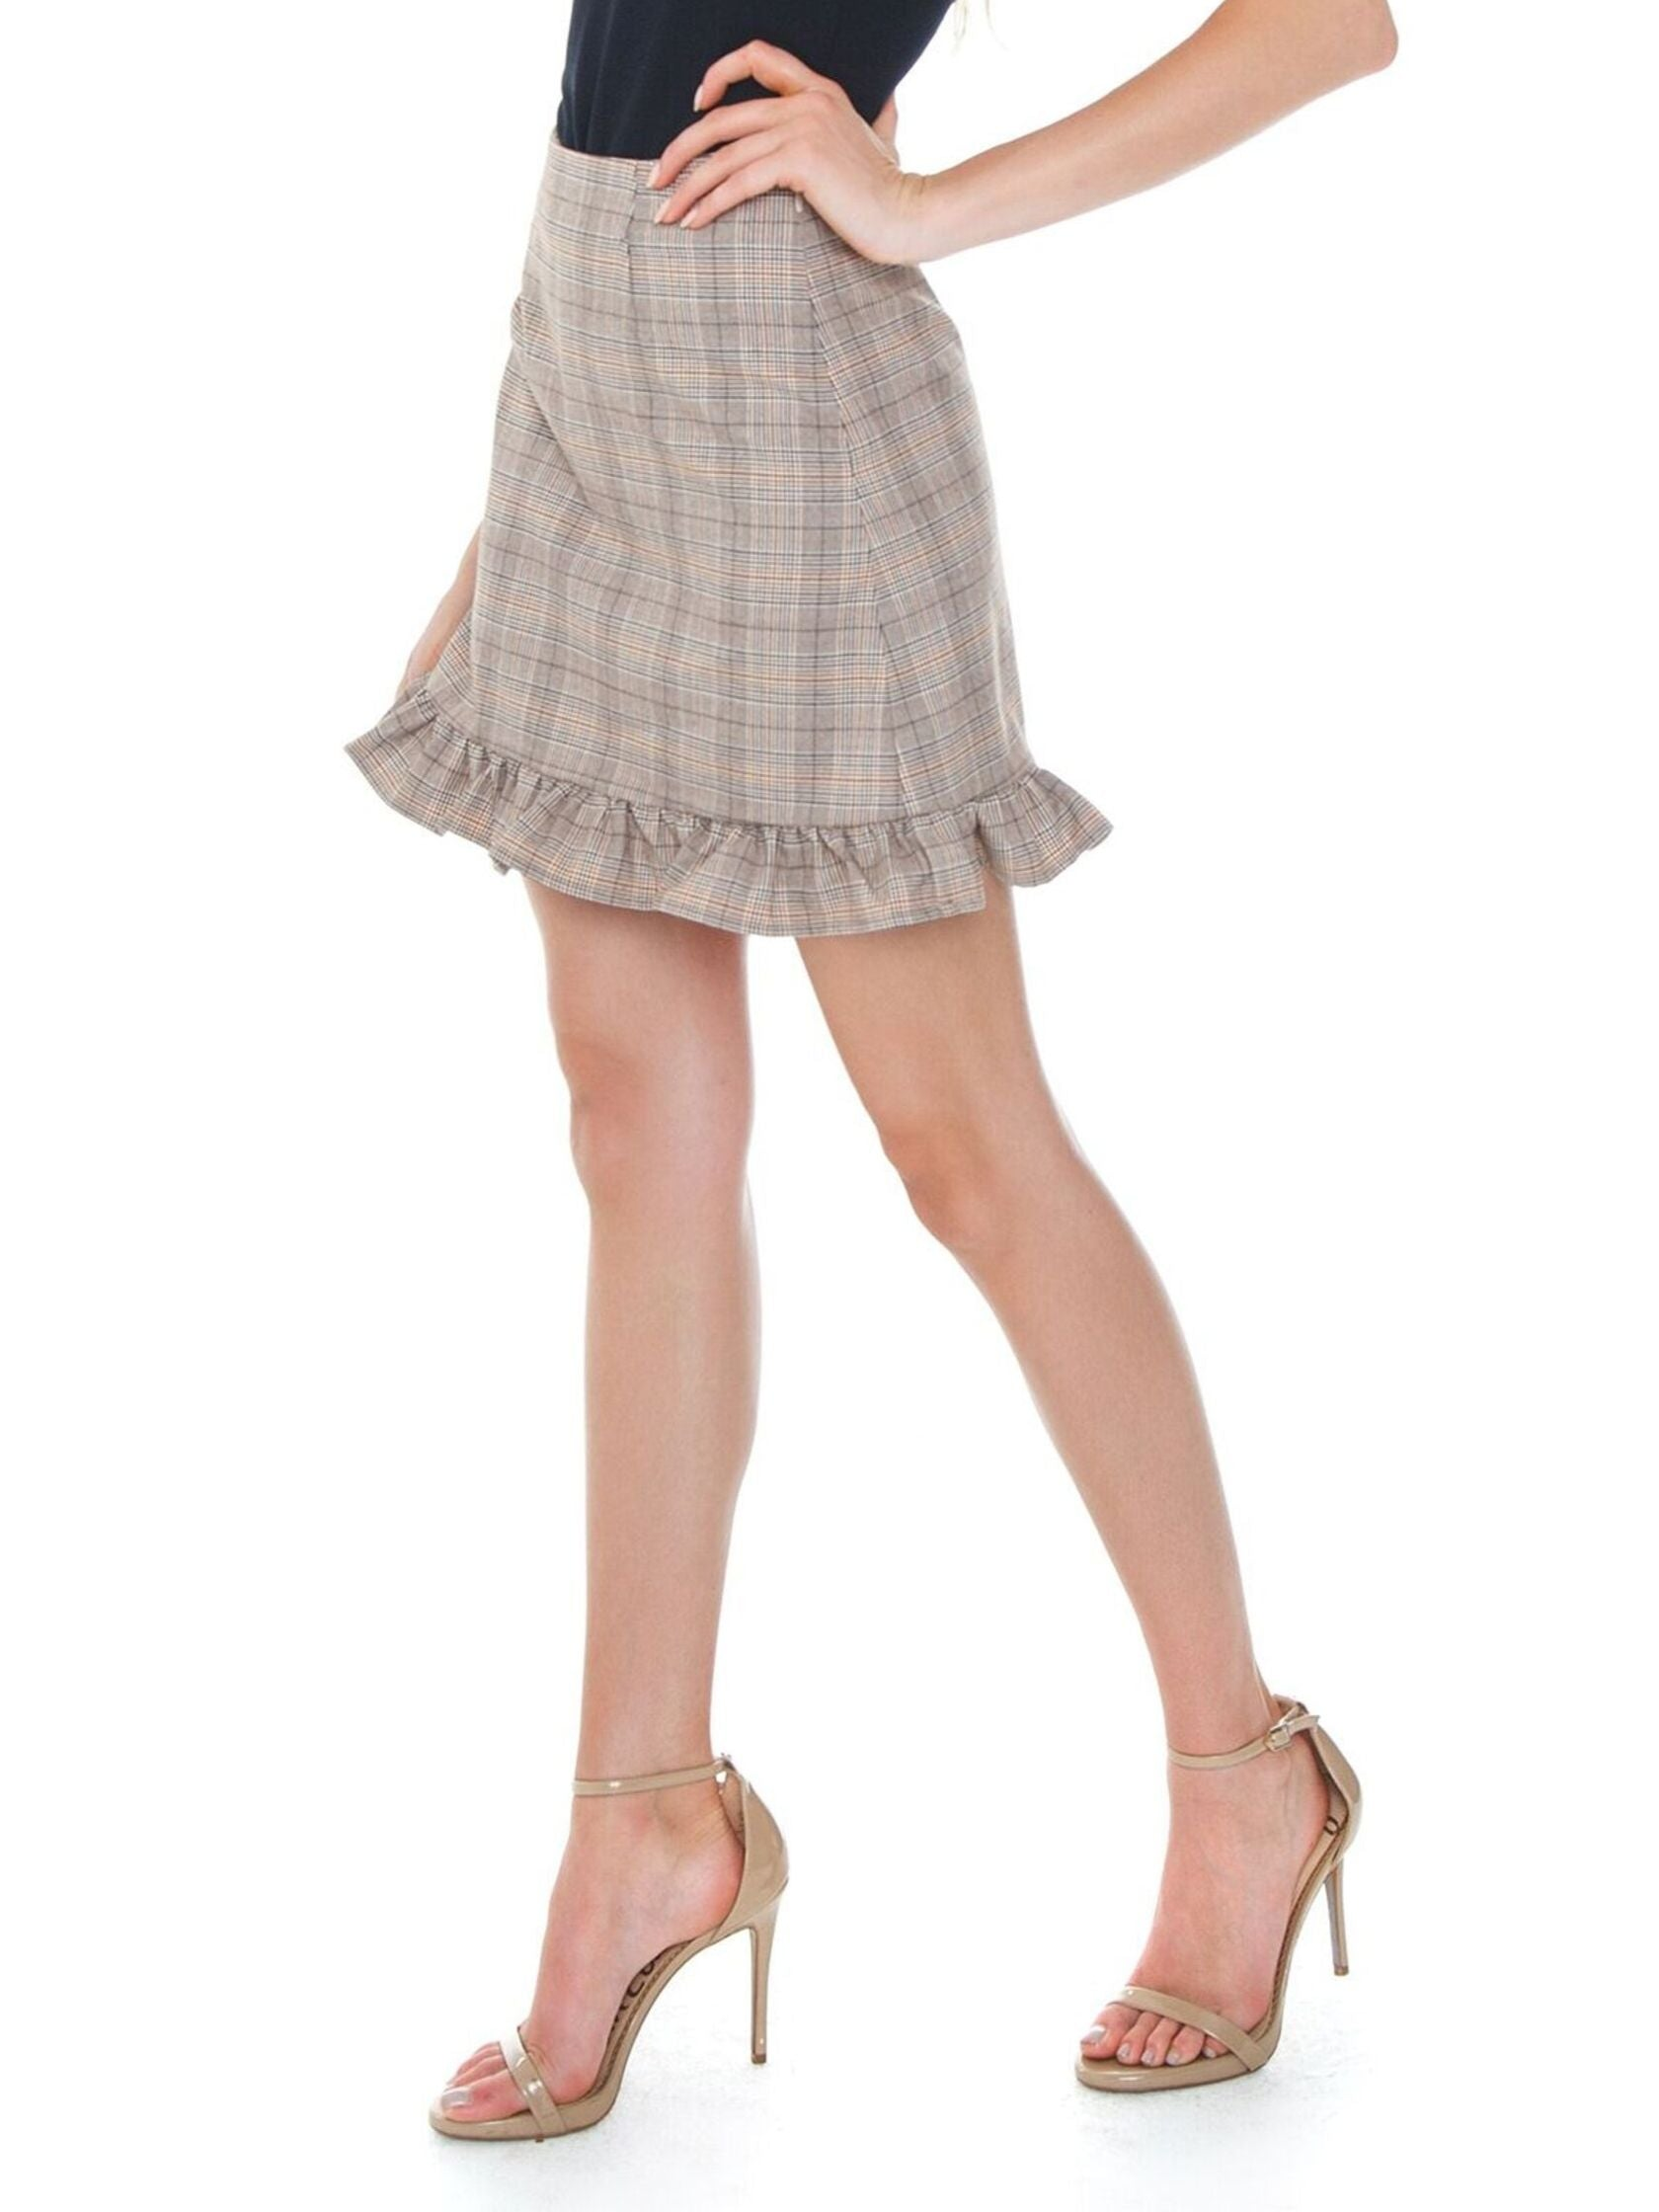 Women wearing a skirt rental from Cupcakes and Cashmere called Matilda Skirt